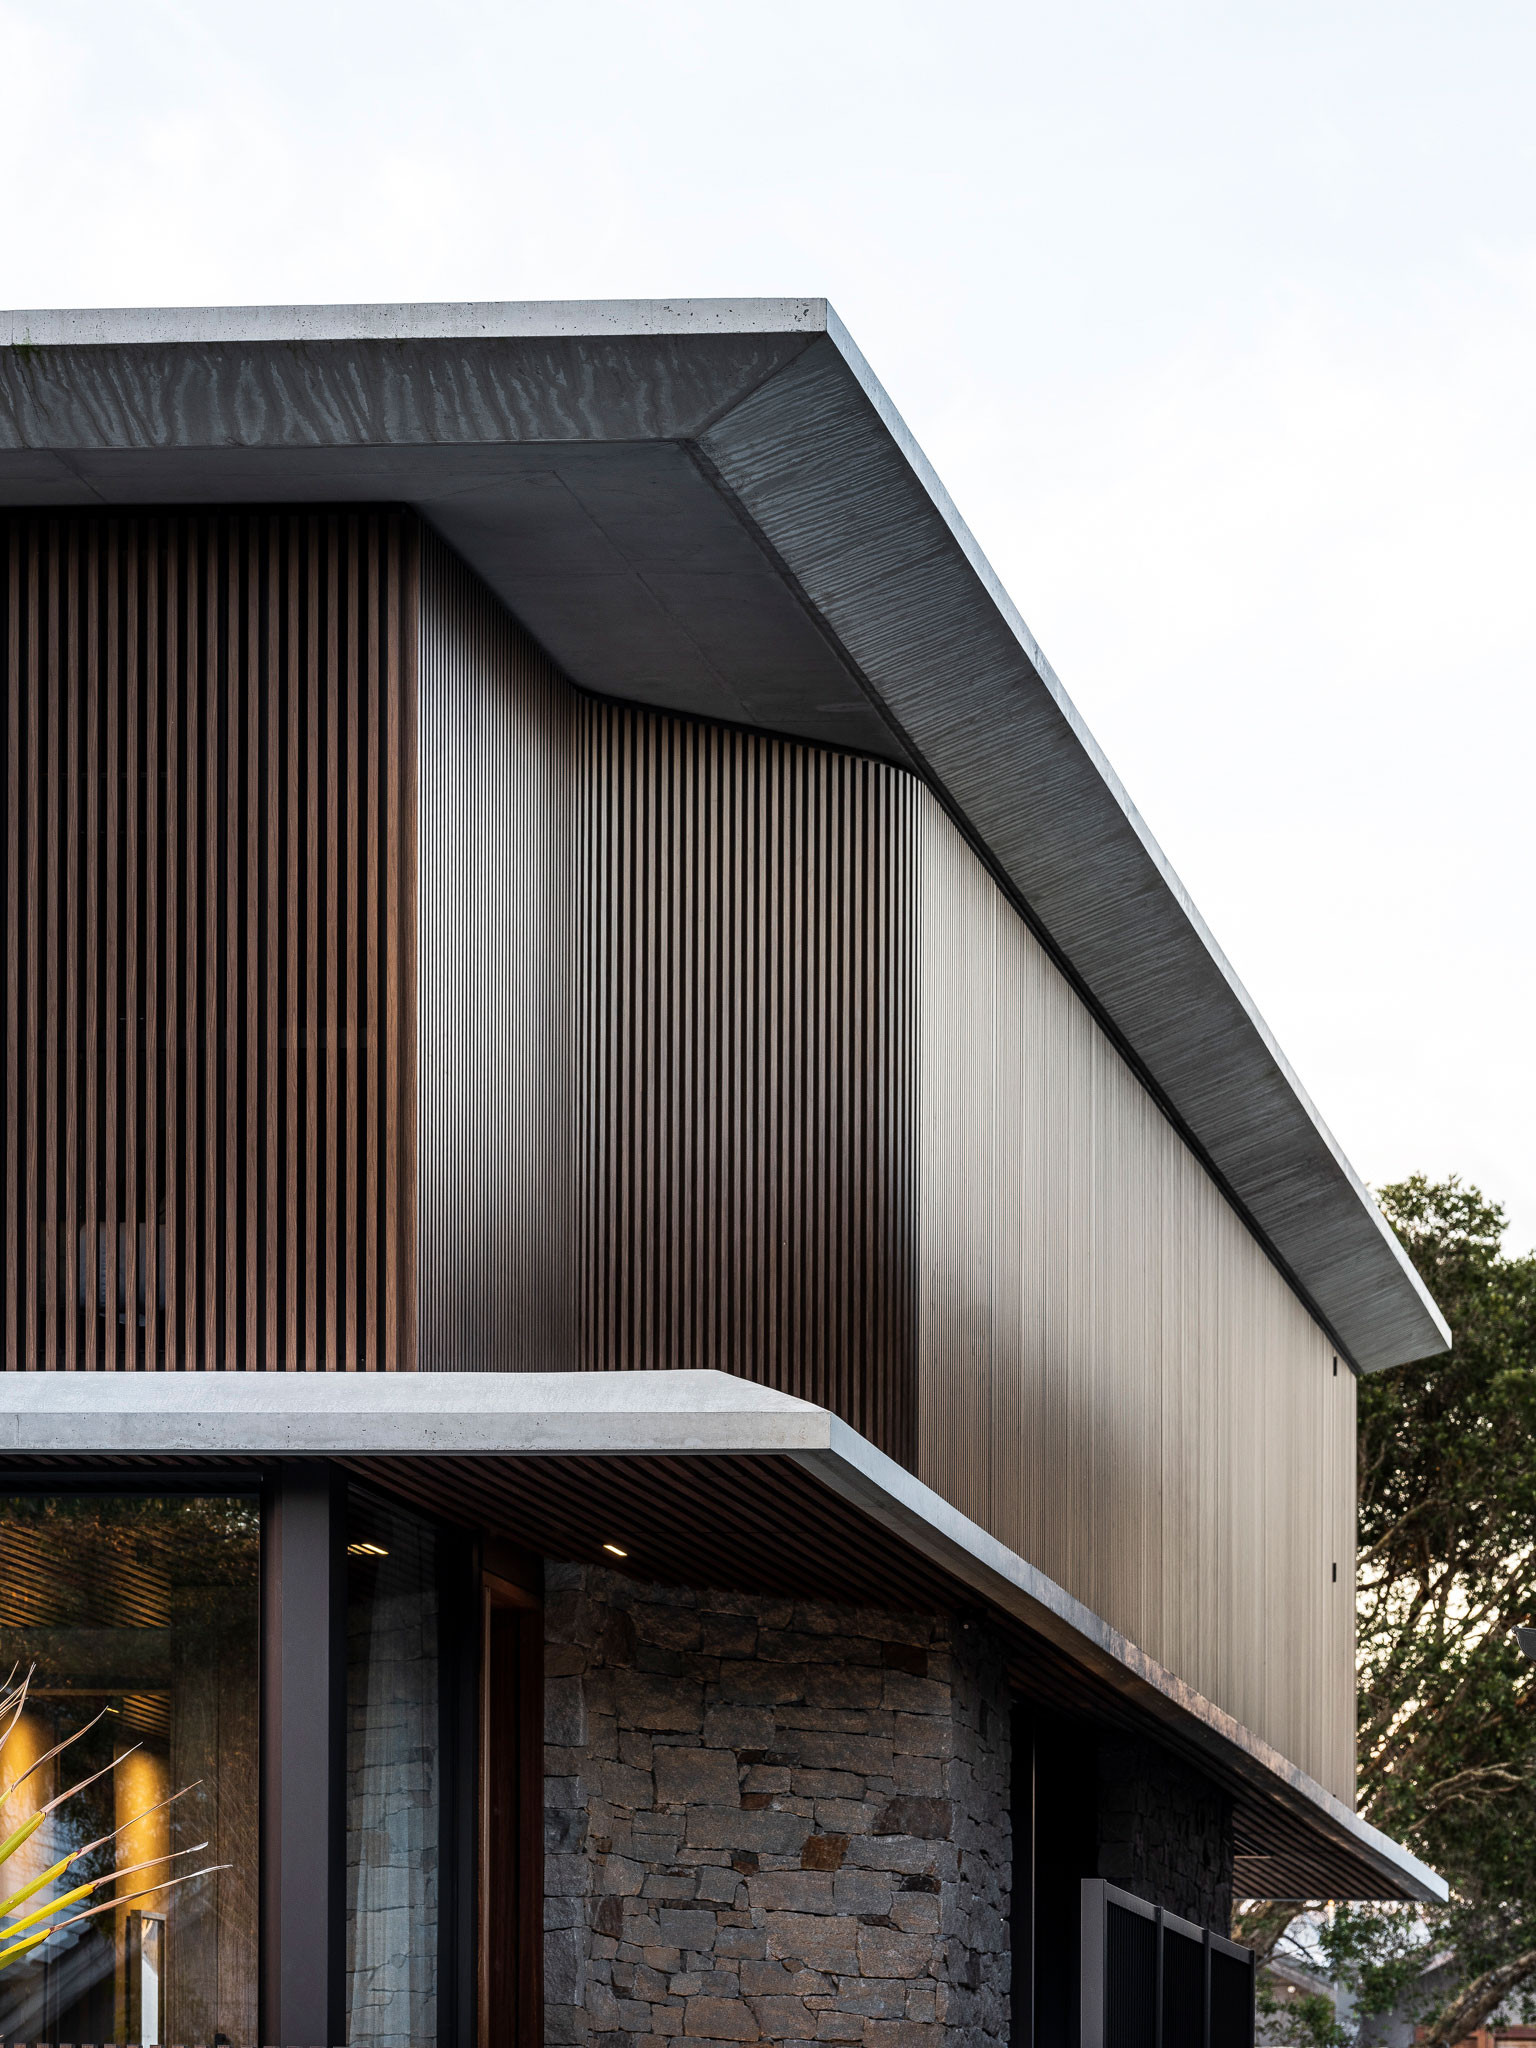 Designed by DKO, two townhouses in Manly, Sydney, showcase a robust yet refined exterior palette of concrete and dark timber shading devices, elevating the coastal influences of the locale.